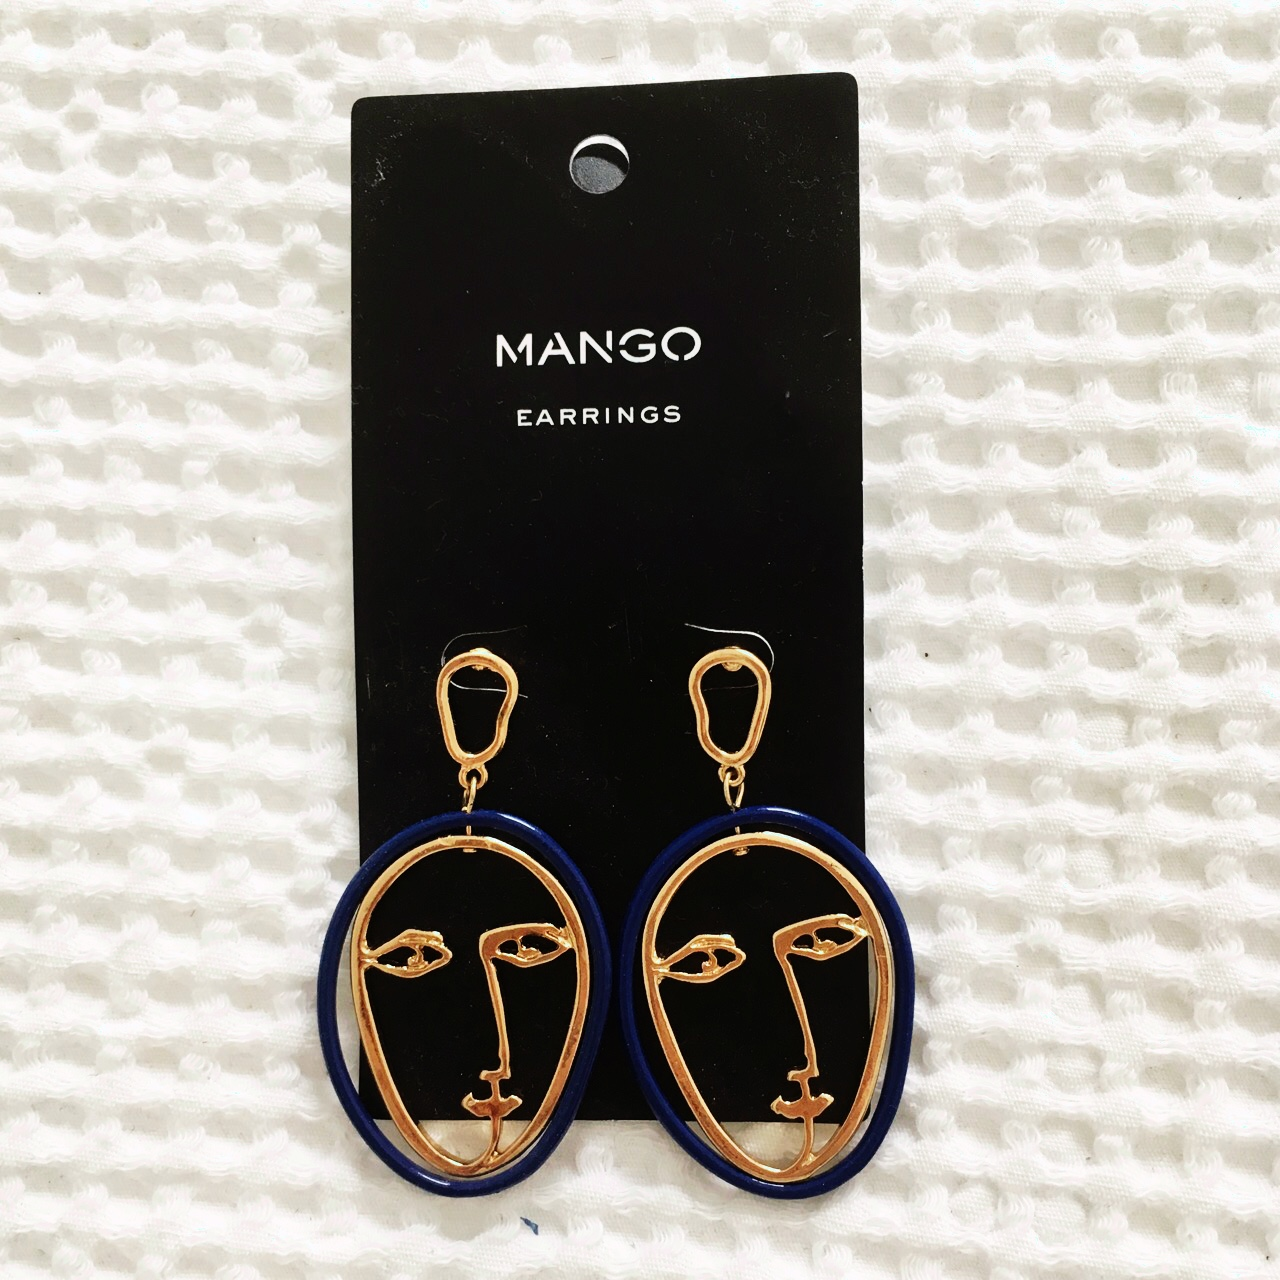 5c25dde496292 A pair of much sought after MANGO face earrings.... - Depop